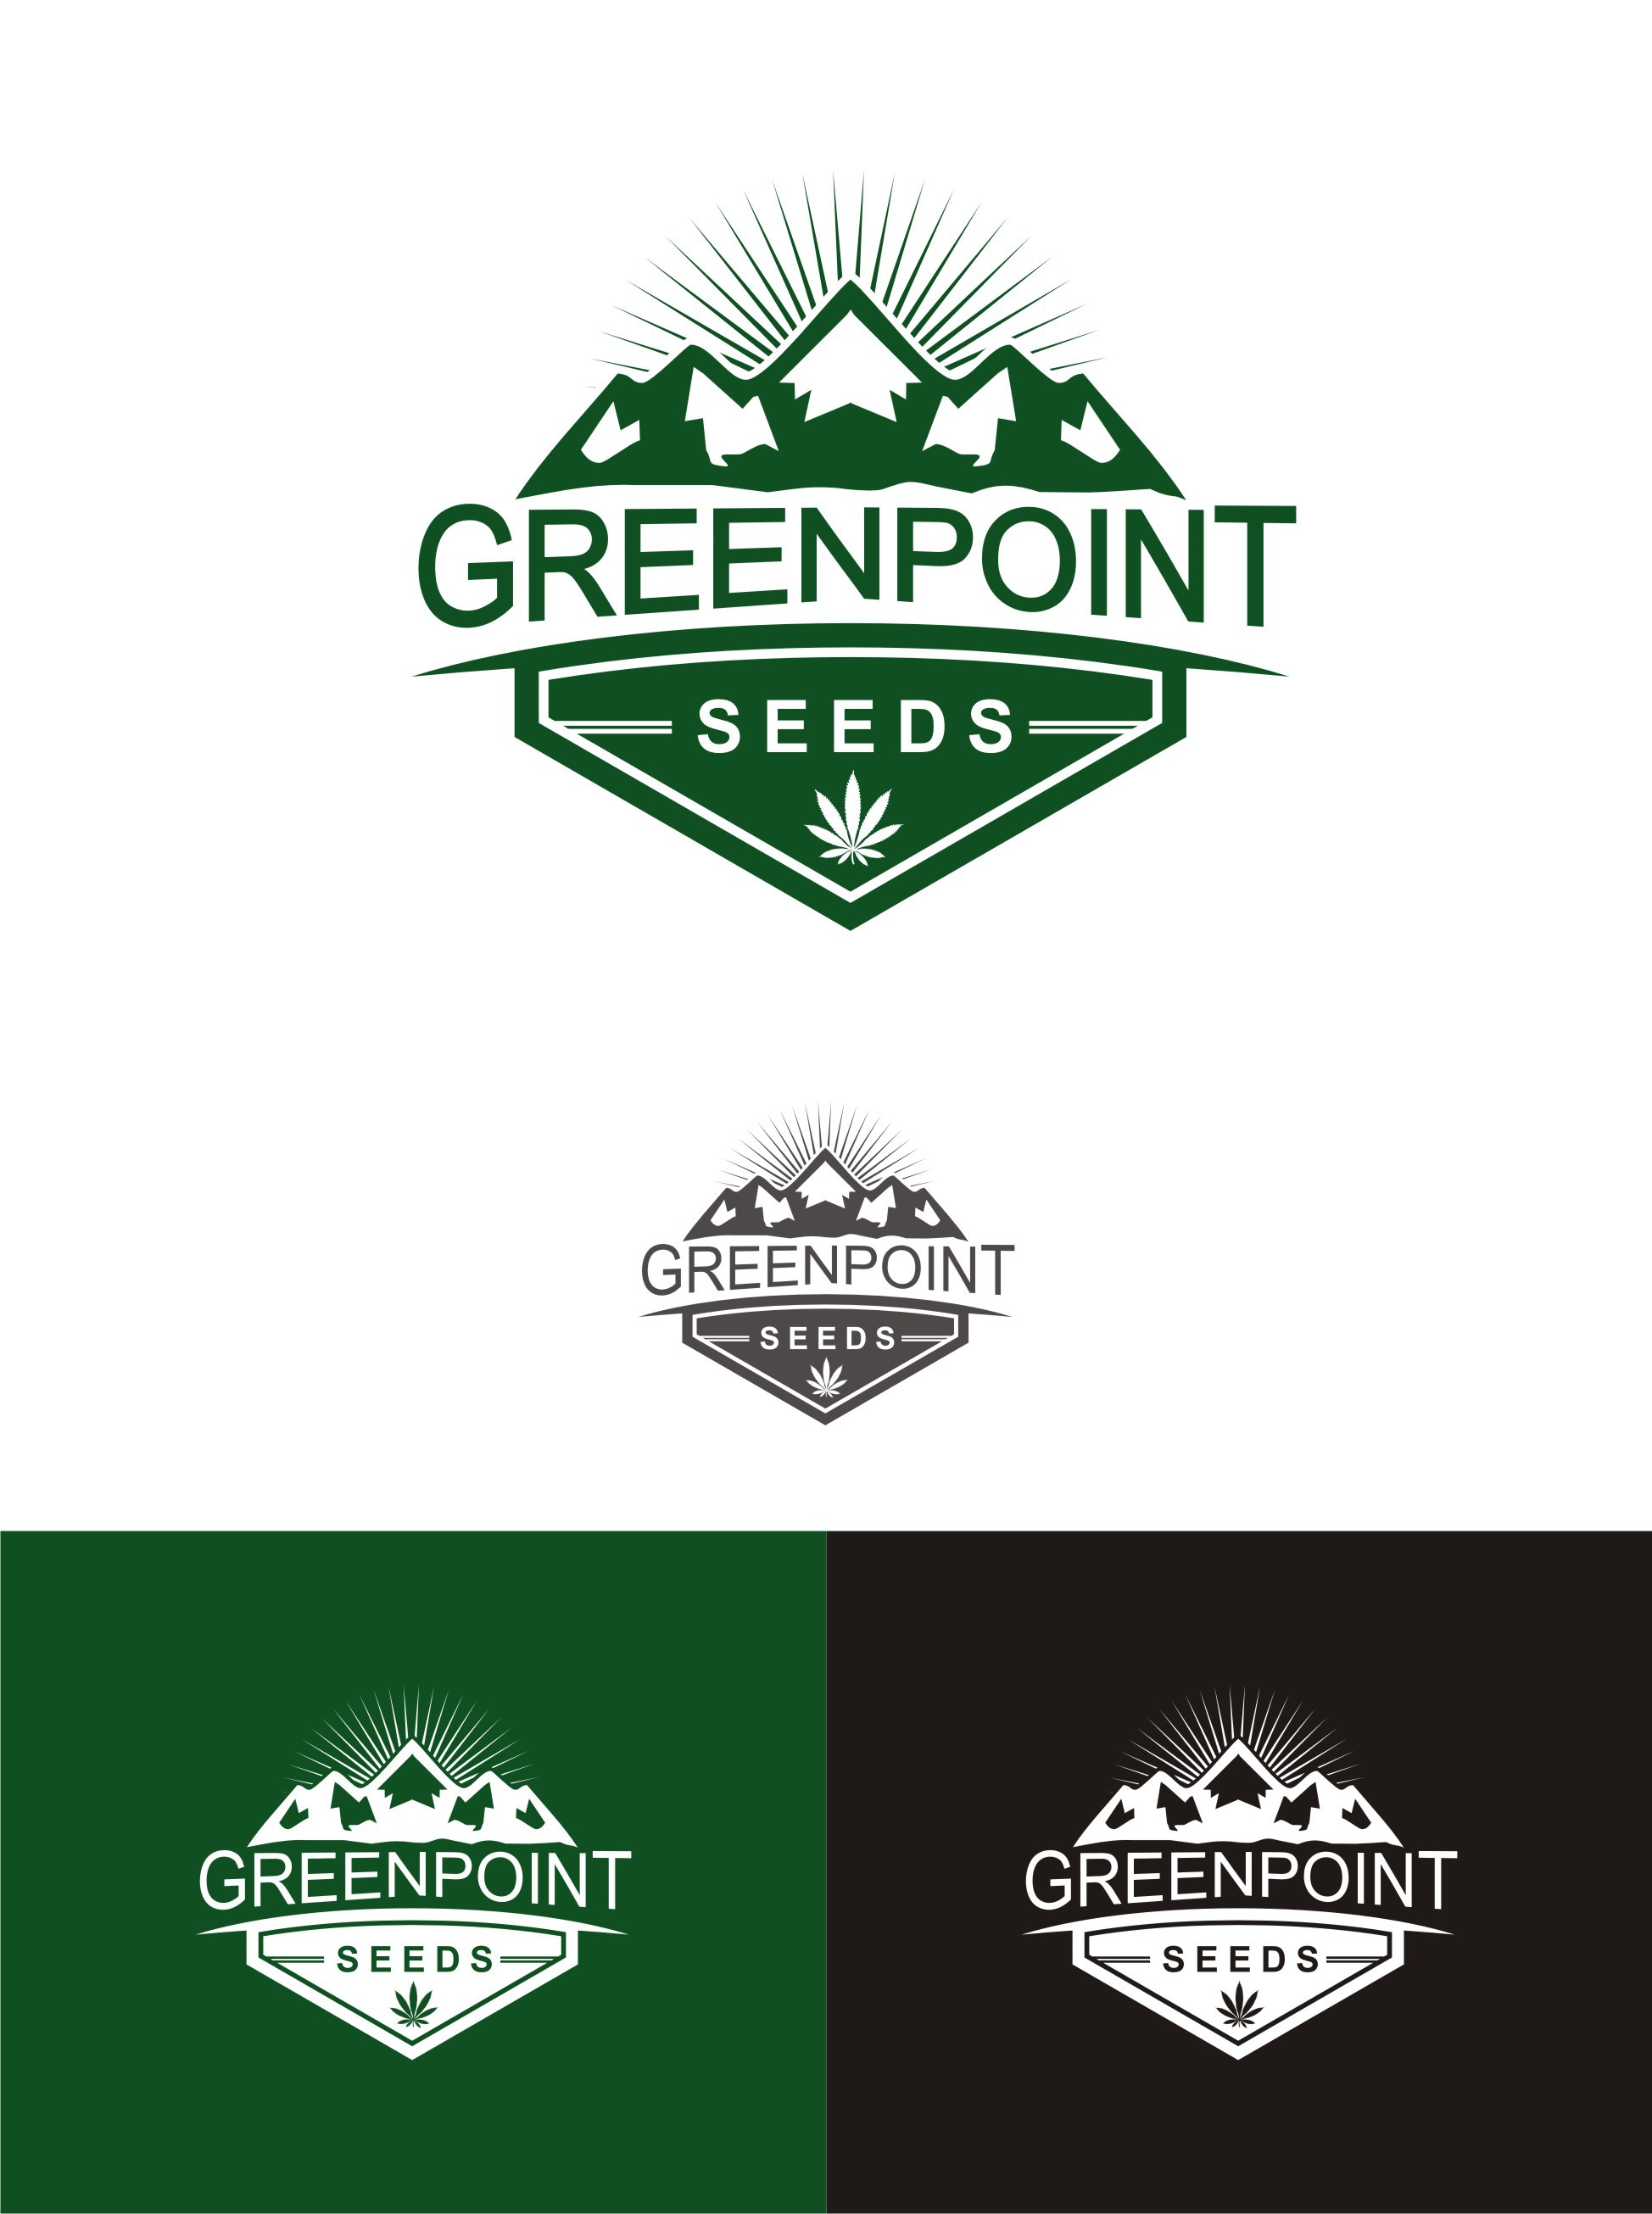 Colorado cannabis company seeks to capture the mountain feel in our logo